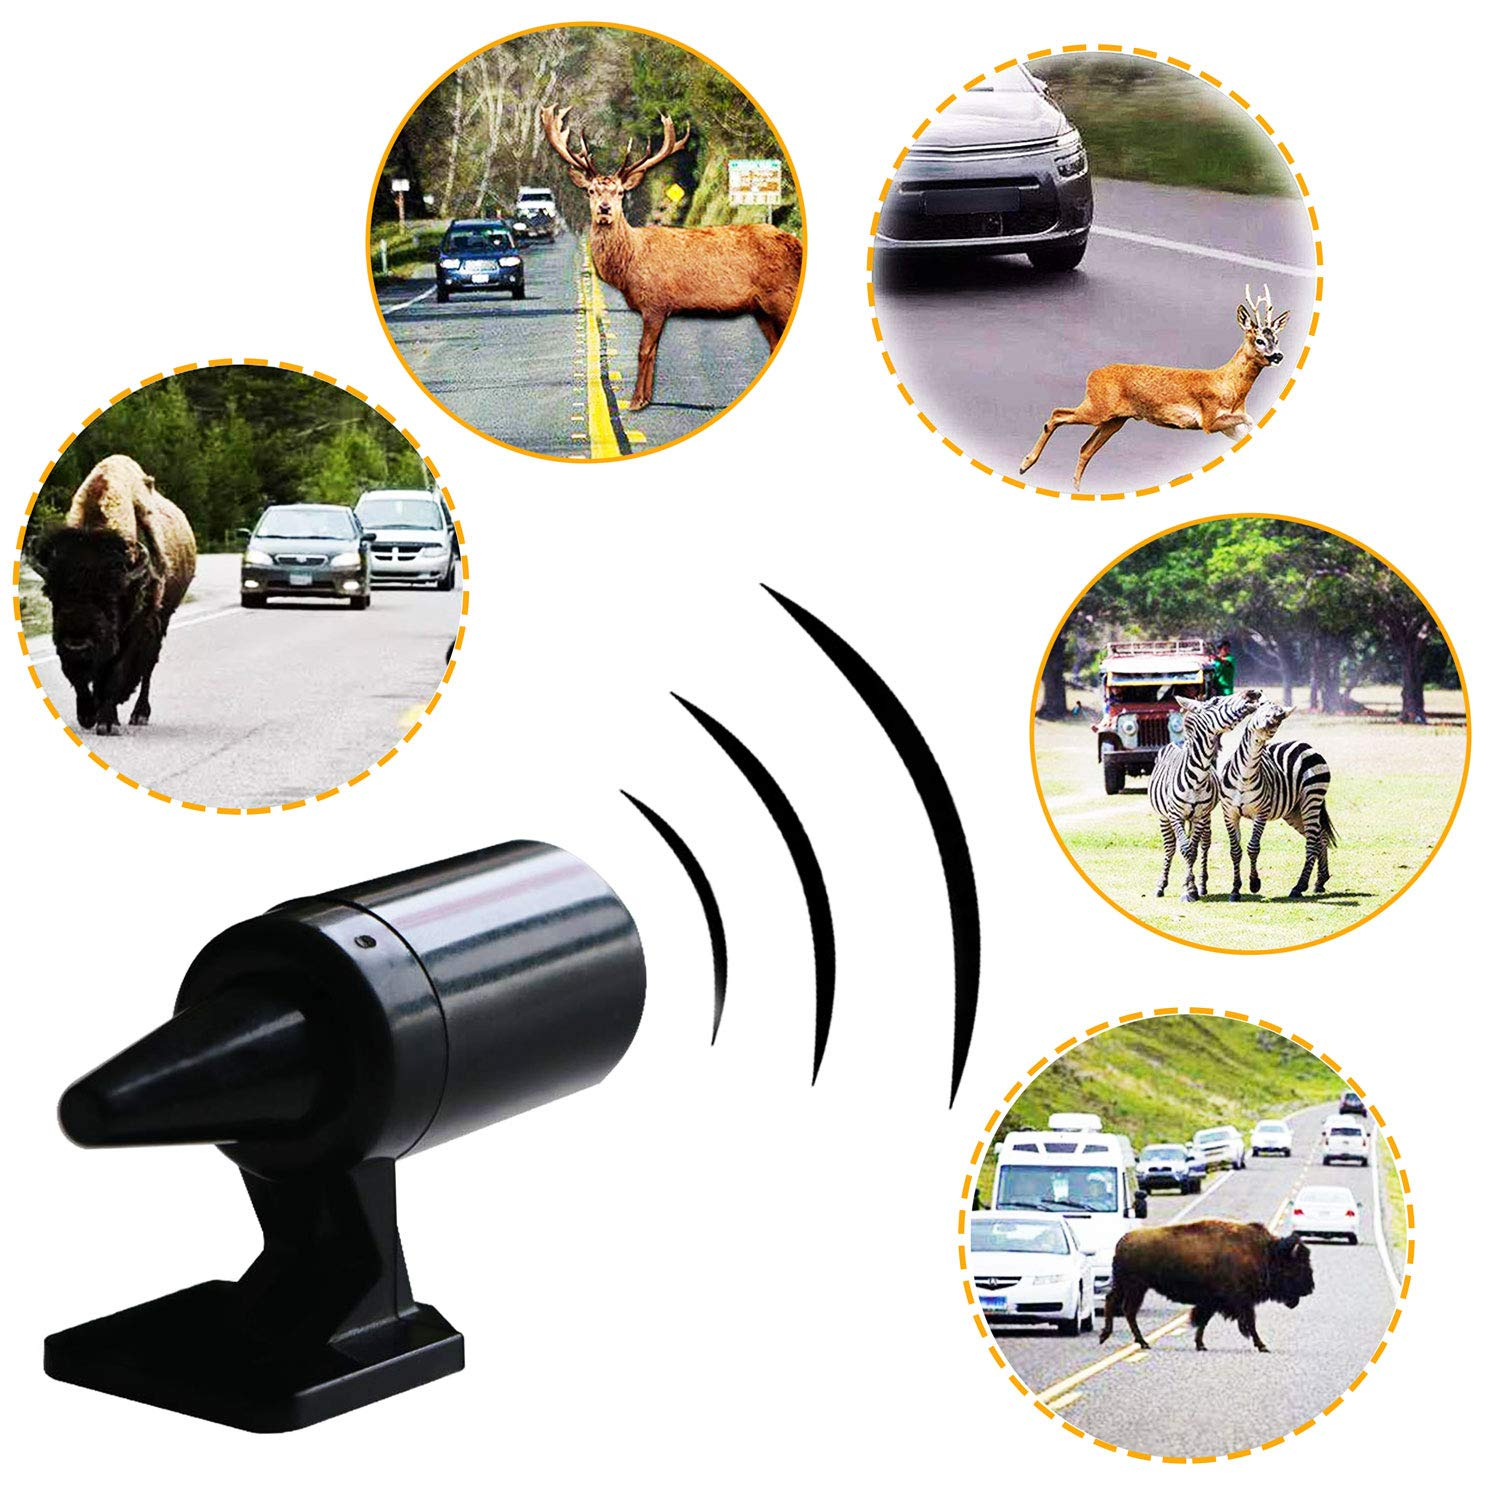 DFYOU 4 PCS Deer Whistles for Car Vehicles with Extra Bases Deer Warning Devices Ultrasonic Wildlife Alarm for Auto Motorcycle Truck SUV and ATV to Save a Deer Black